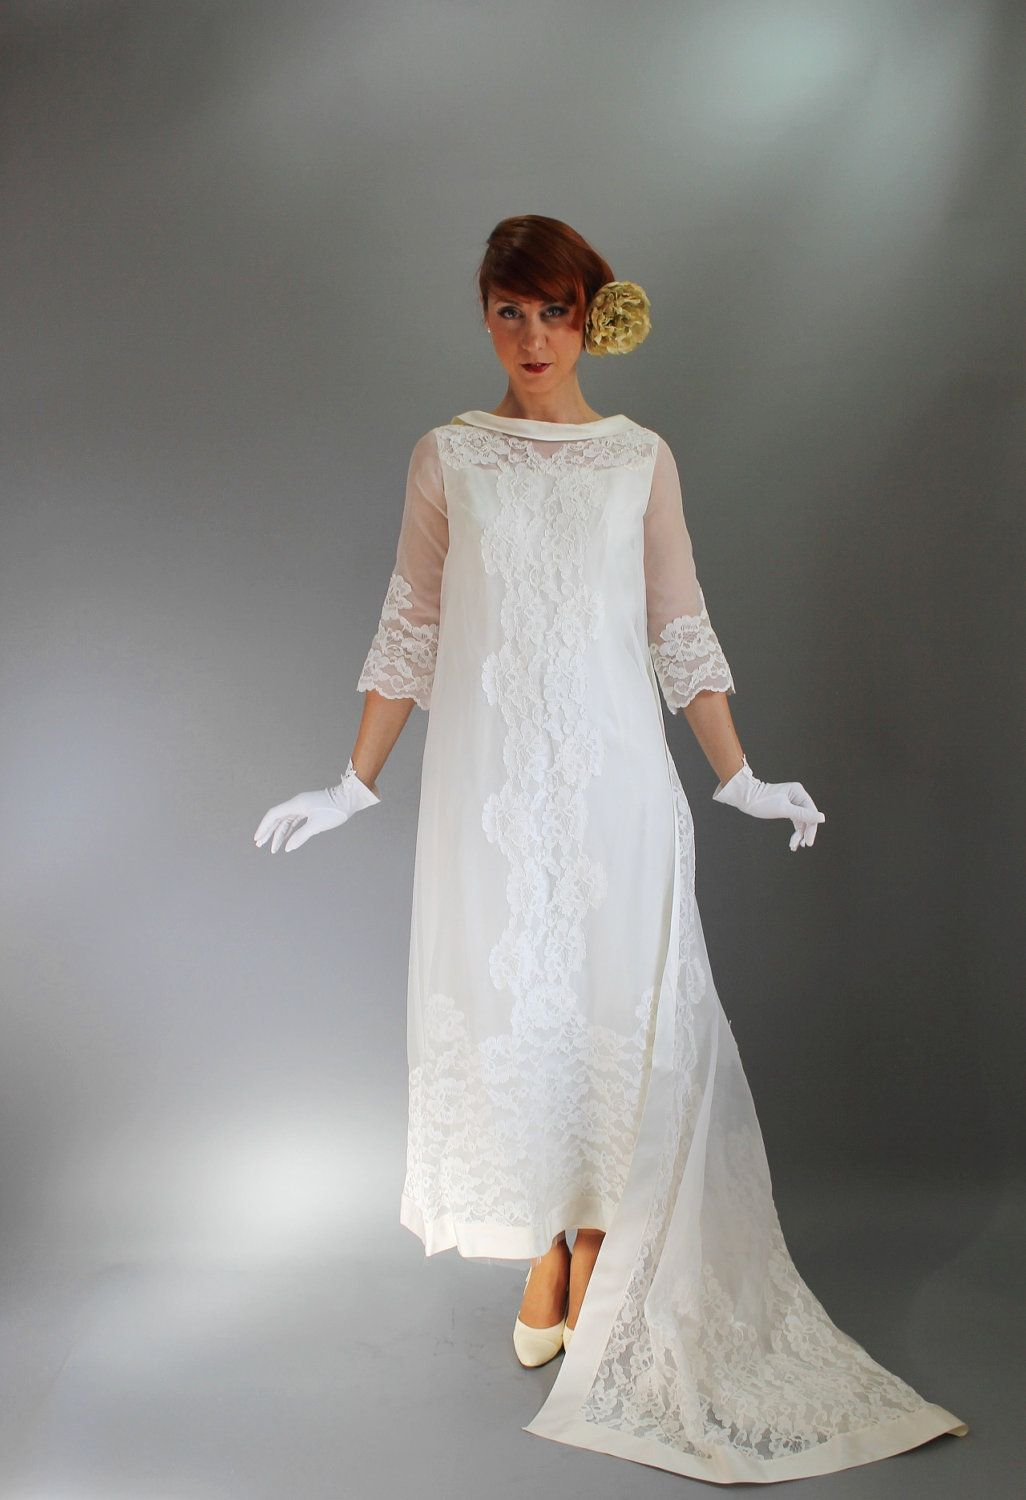 Vintage 1960s Wedding Dress with Provenance, White